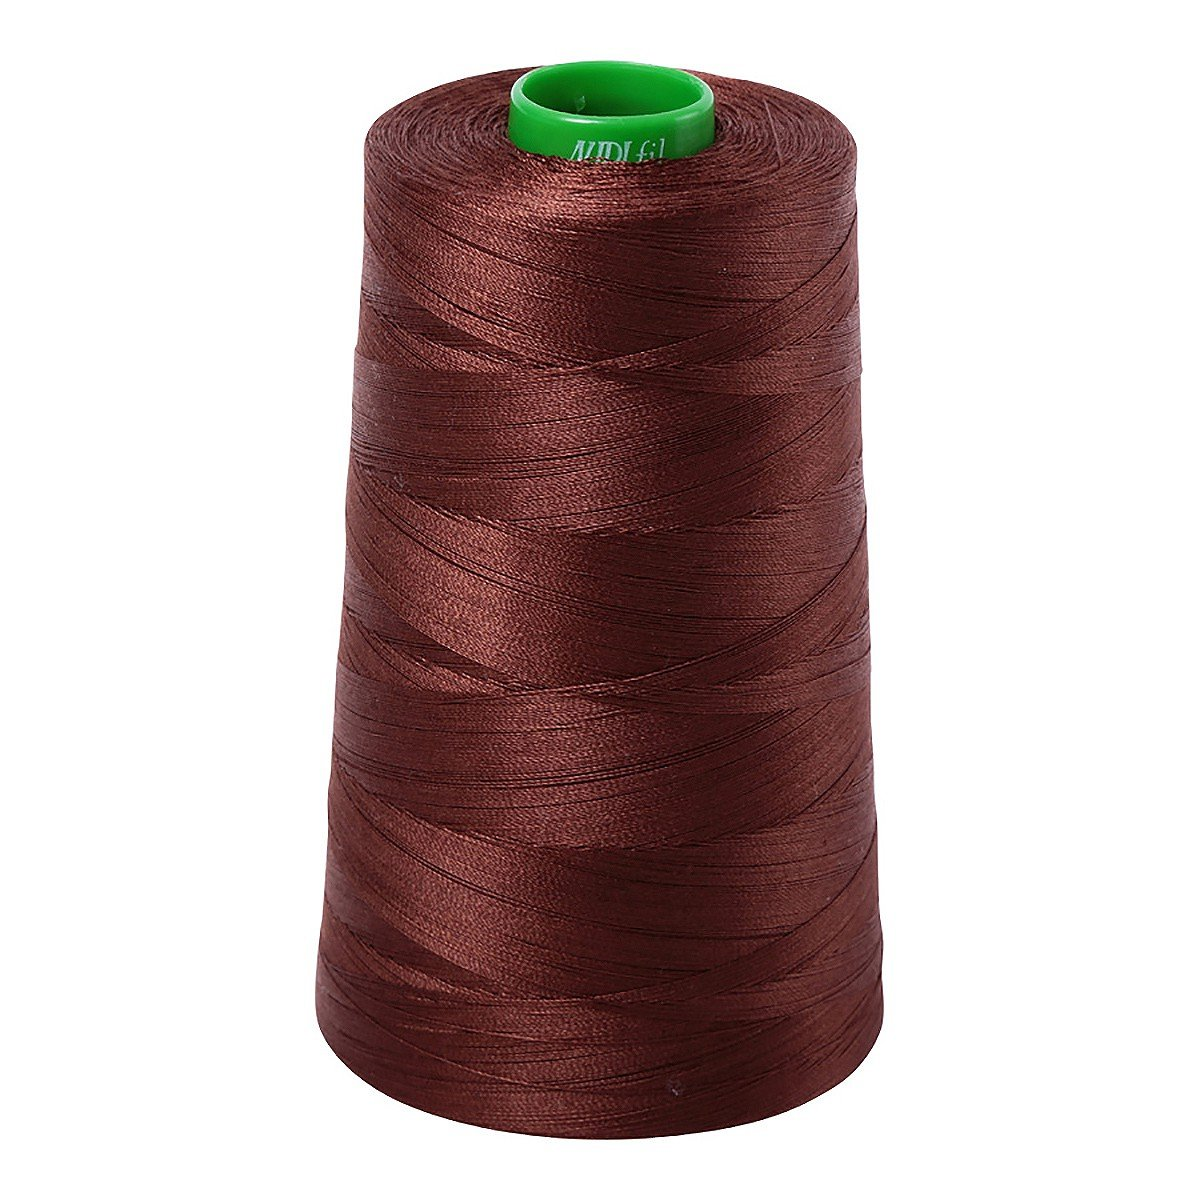 Mako (Cotton) Embroidery Thread 40wt 5140yds Chocolate